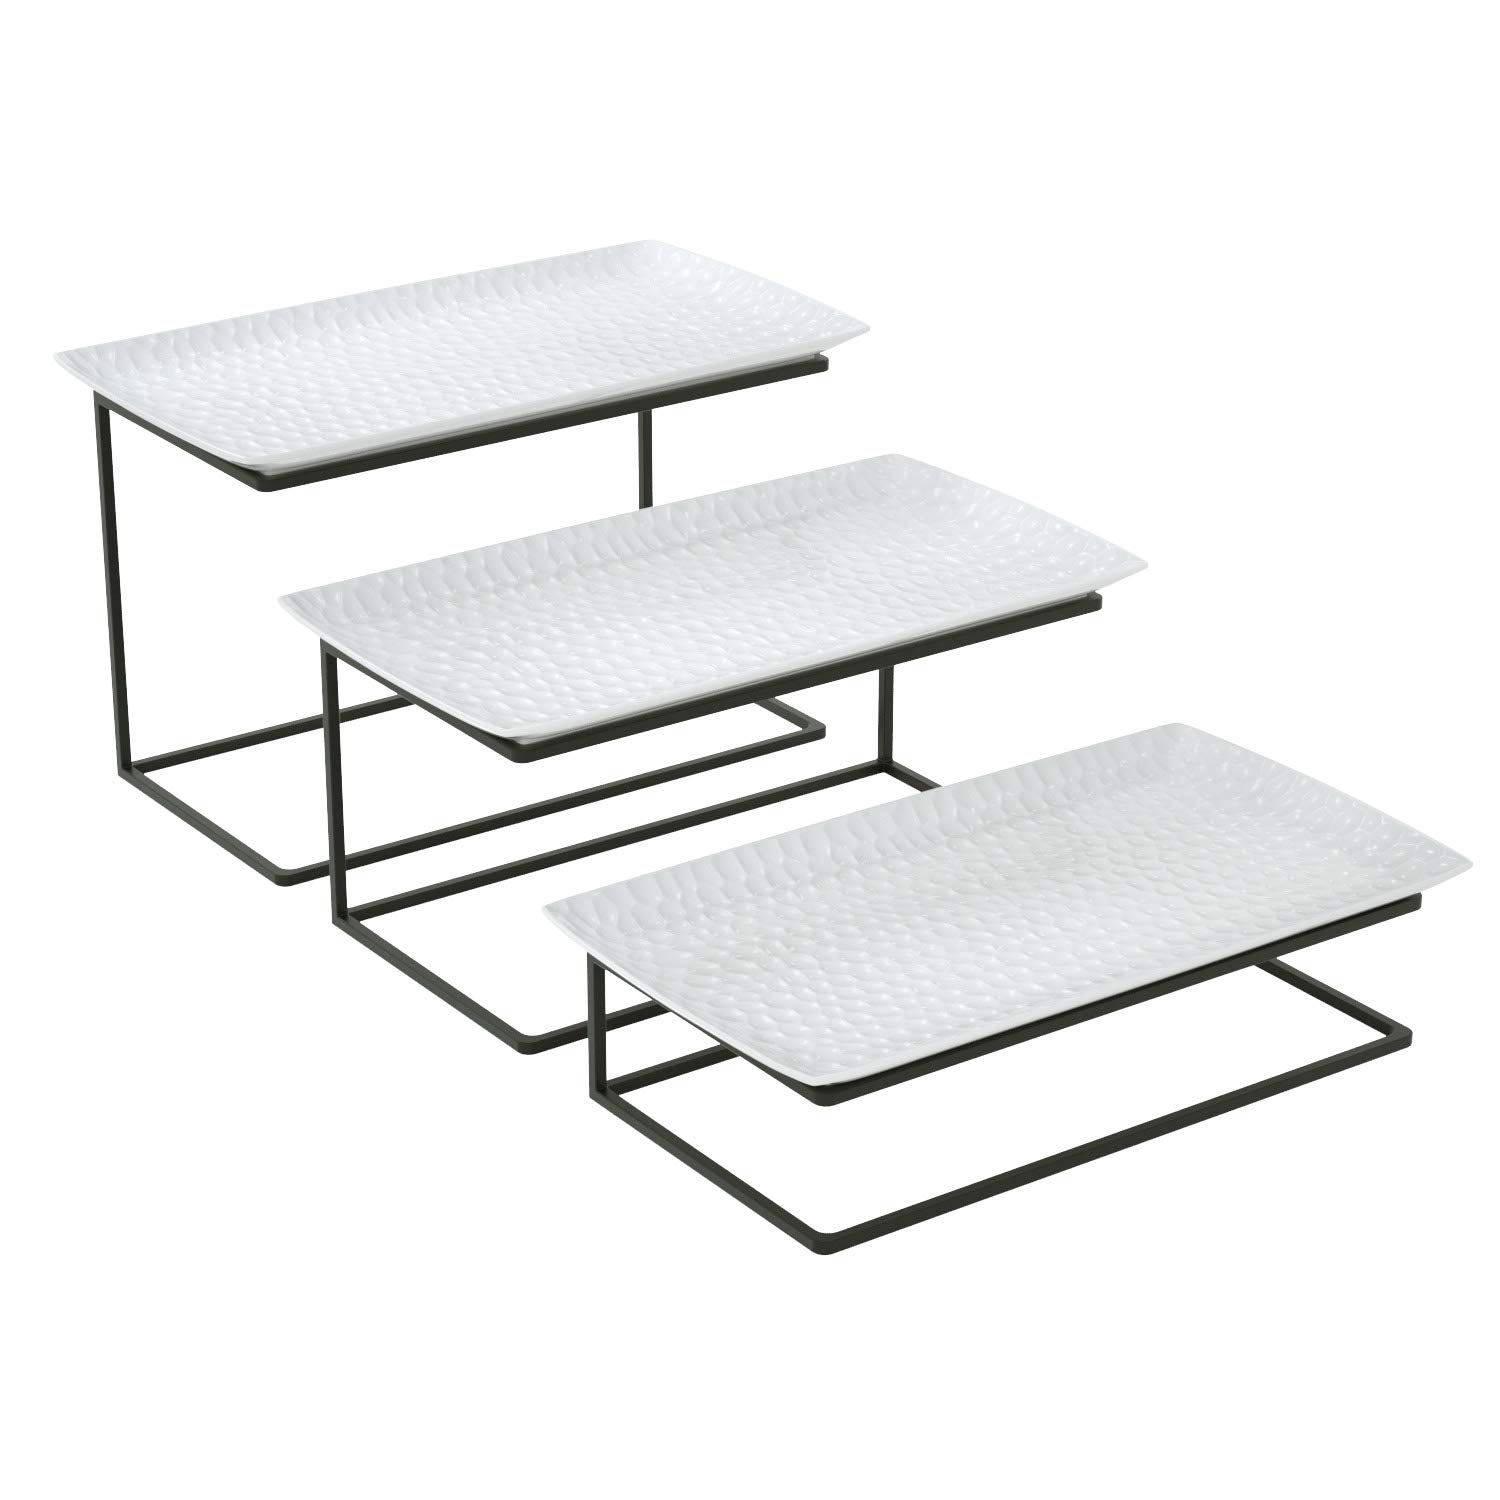 Love-KANKEI Tiered Serving Stand-Tiered Serving Tray Free Combination for Party with 3 White Rectangular Platters to Display Food